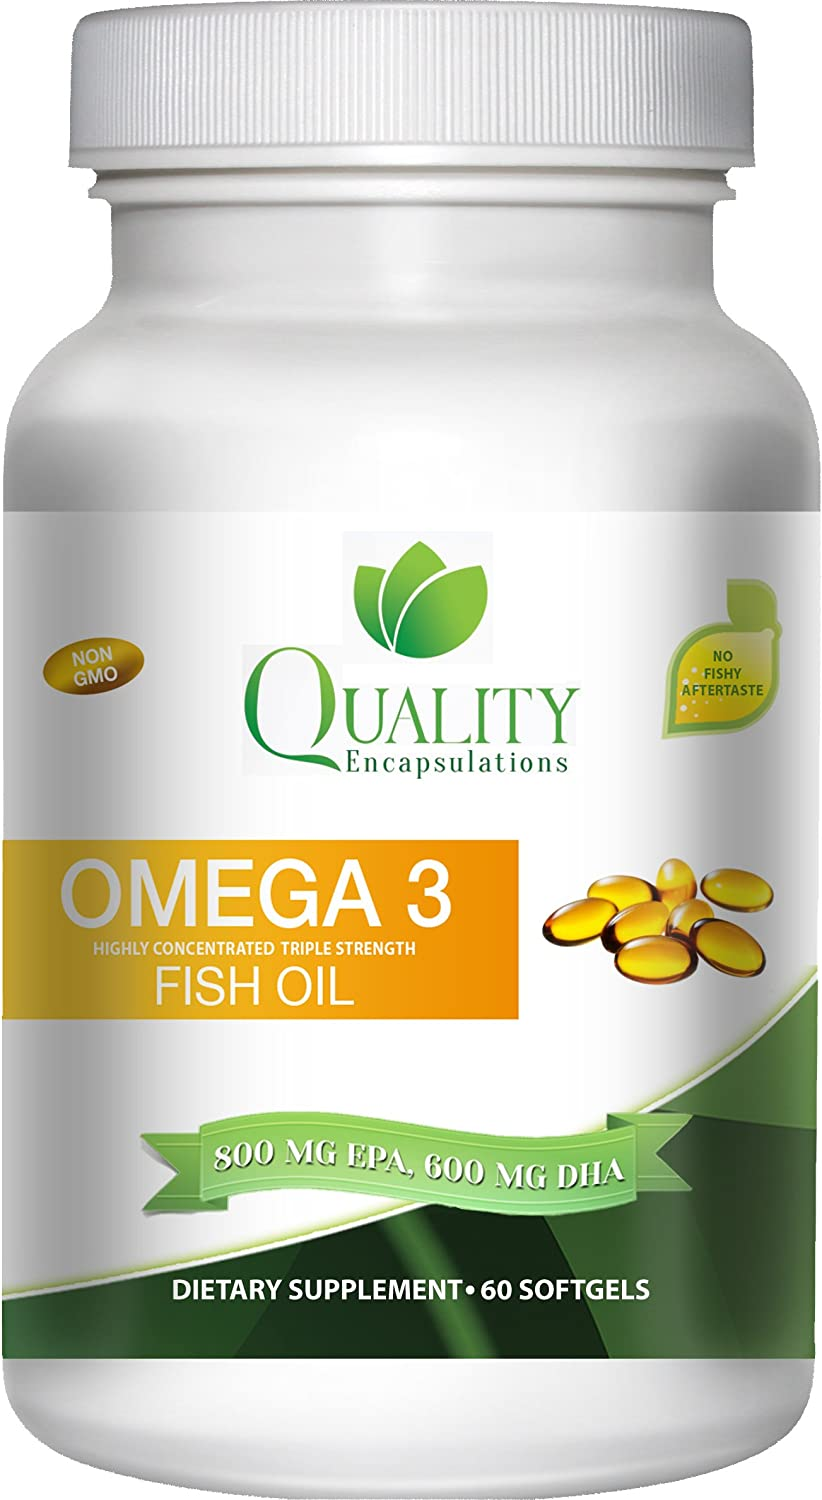 Glamamama 39 s goodies quality encapsulations omega 3 fish for Omega 3 fish oil reviews